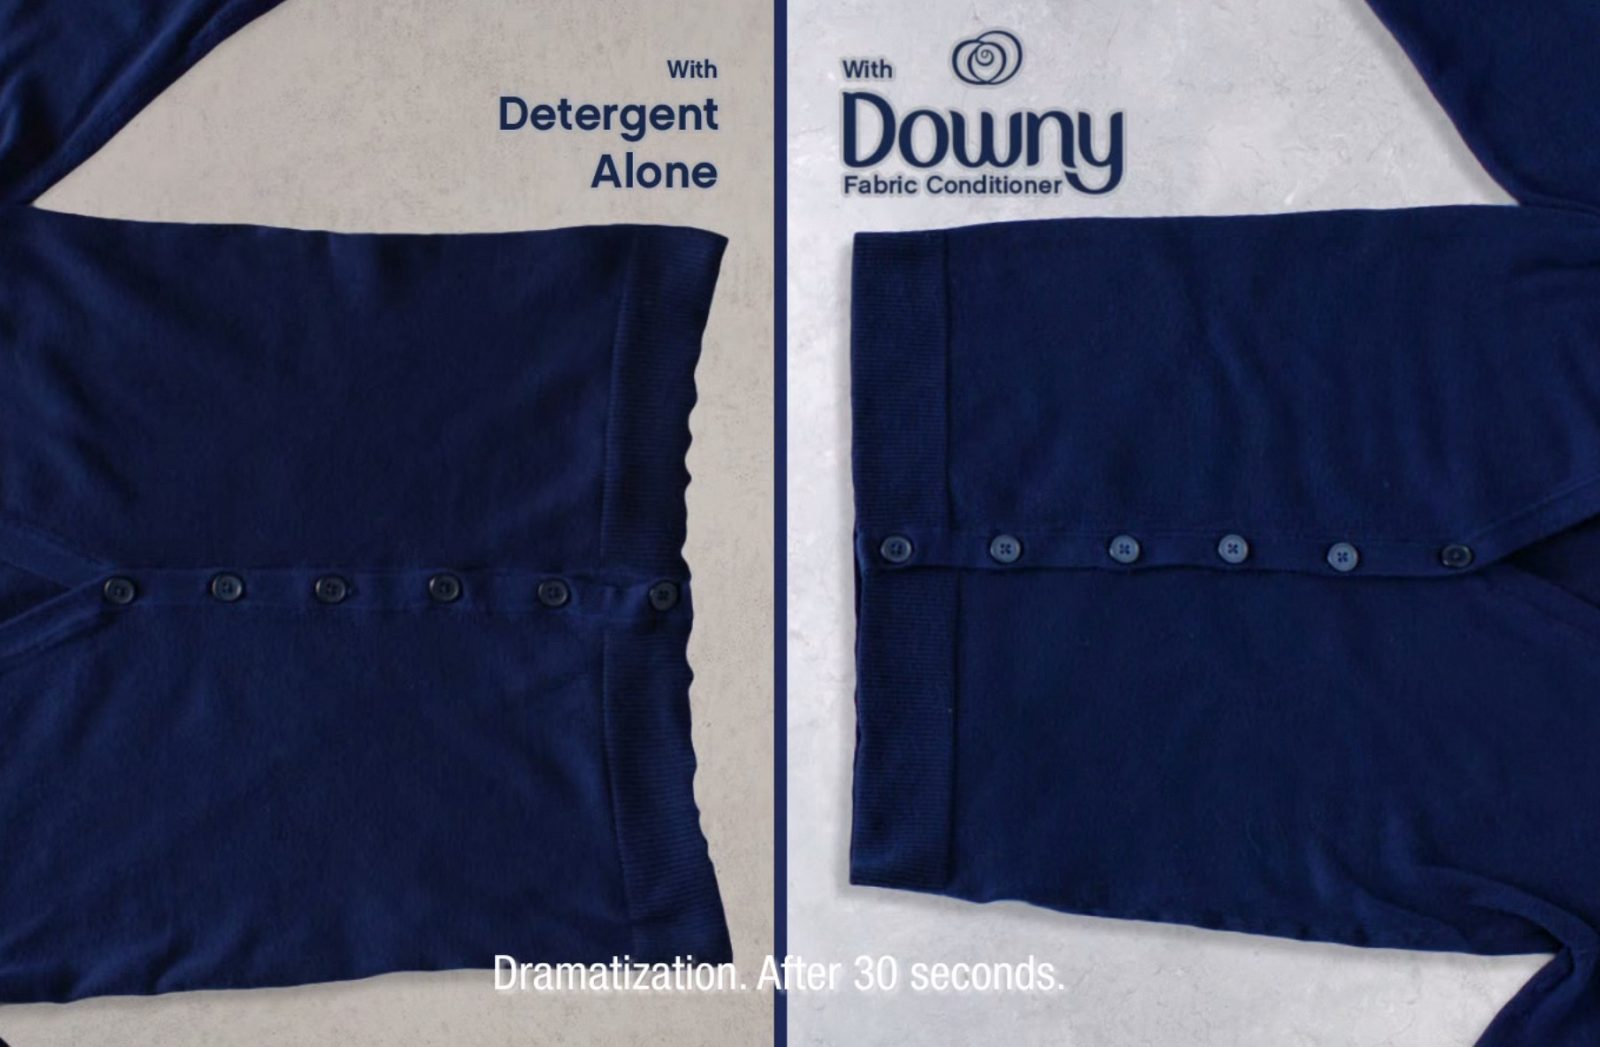 DownyImage3